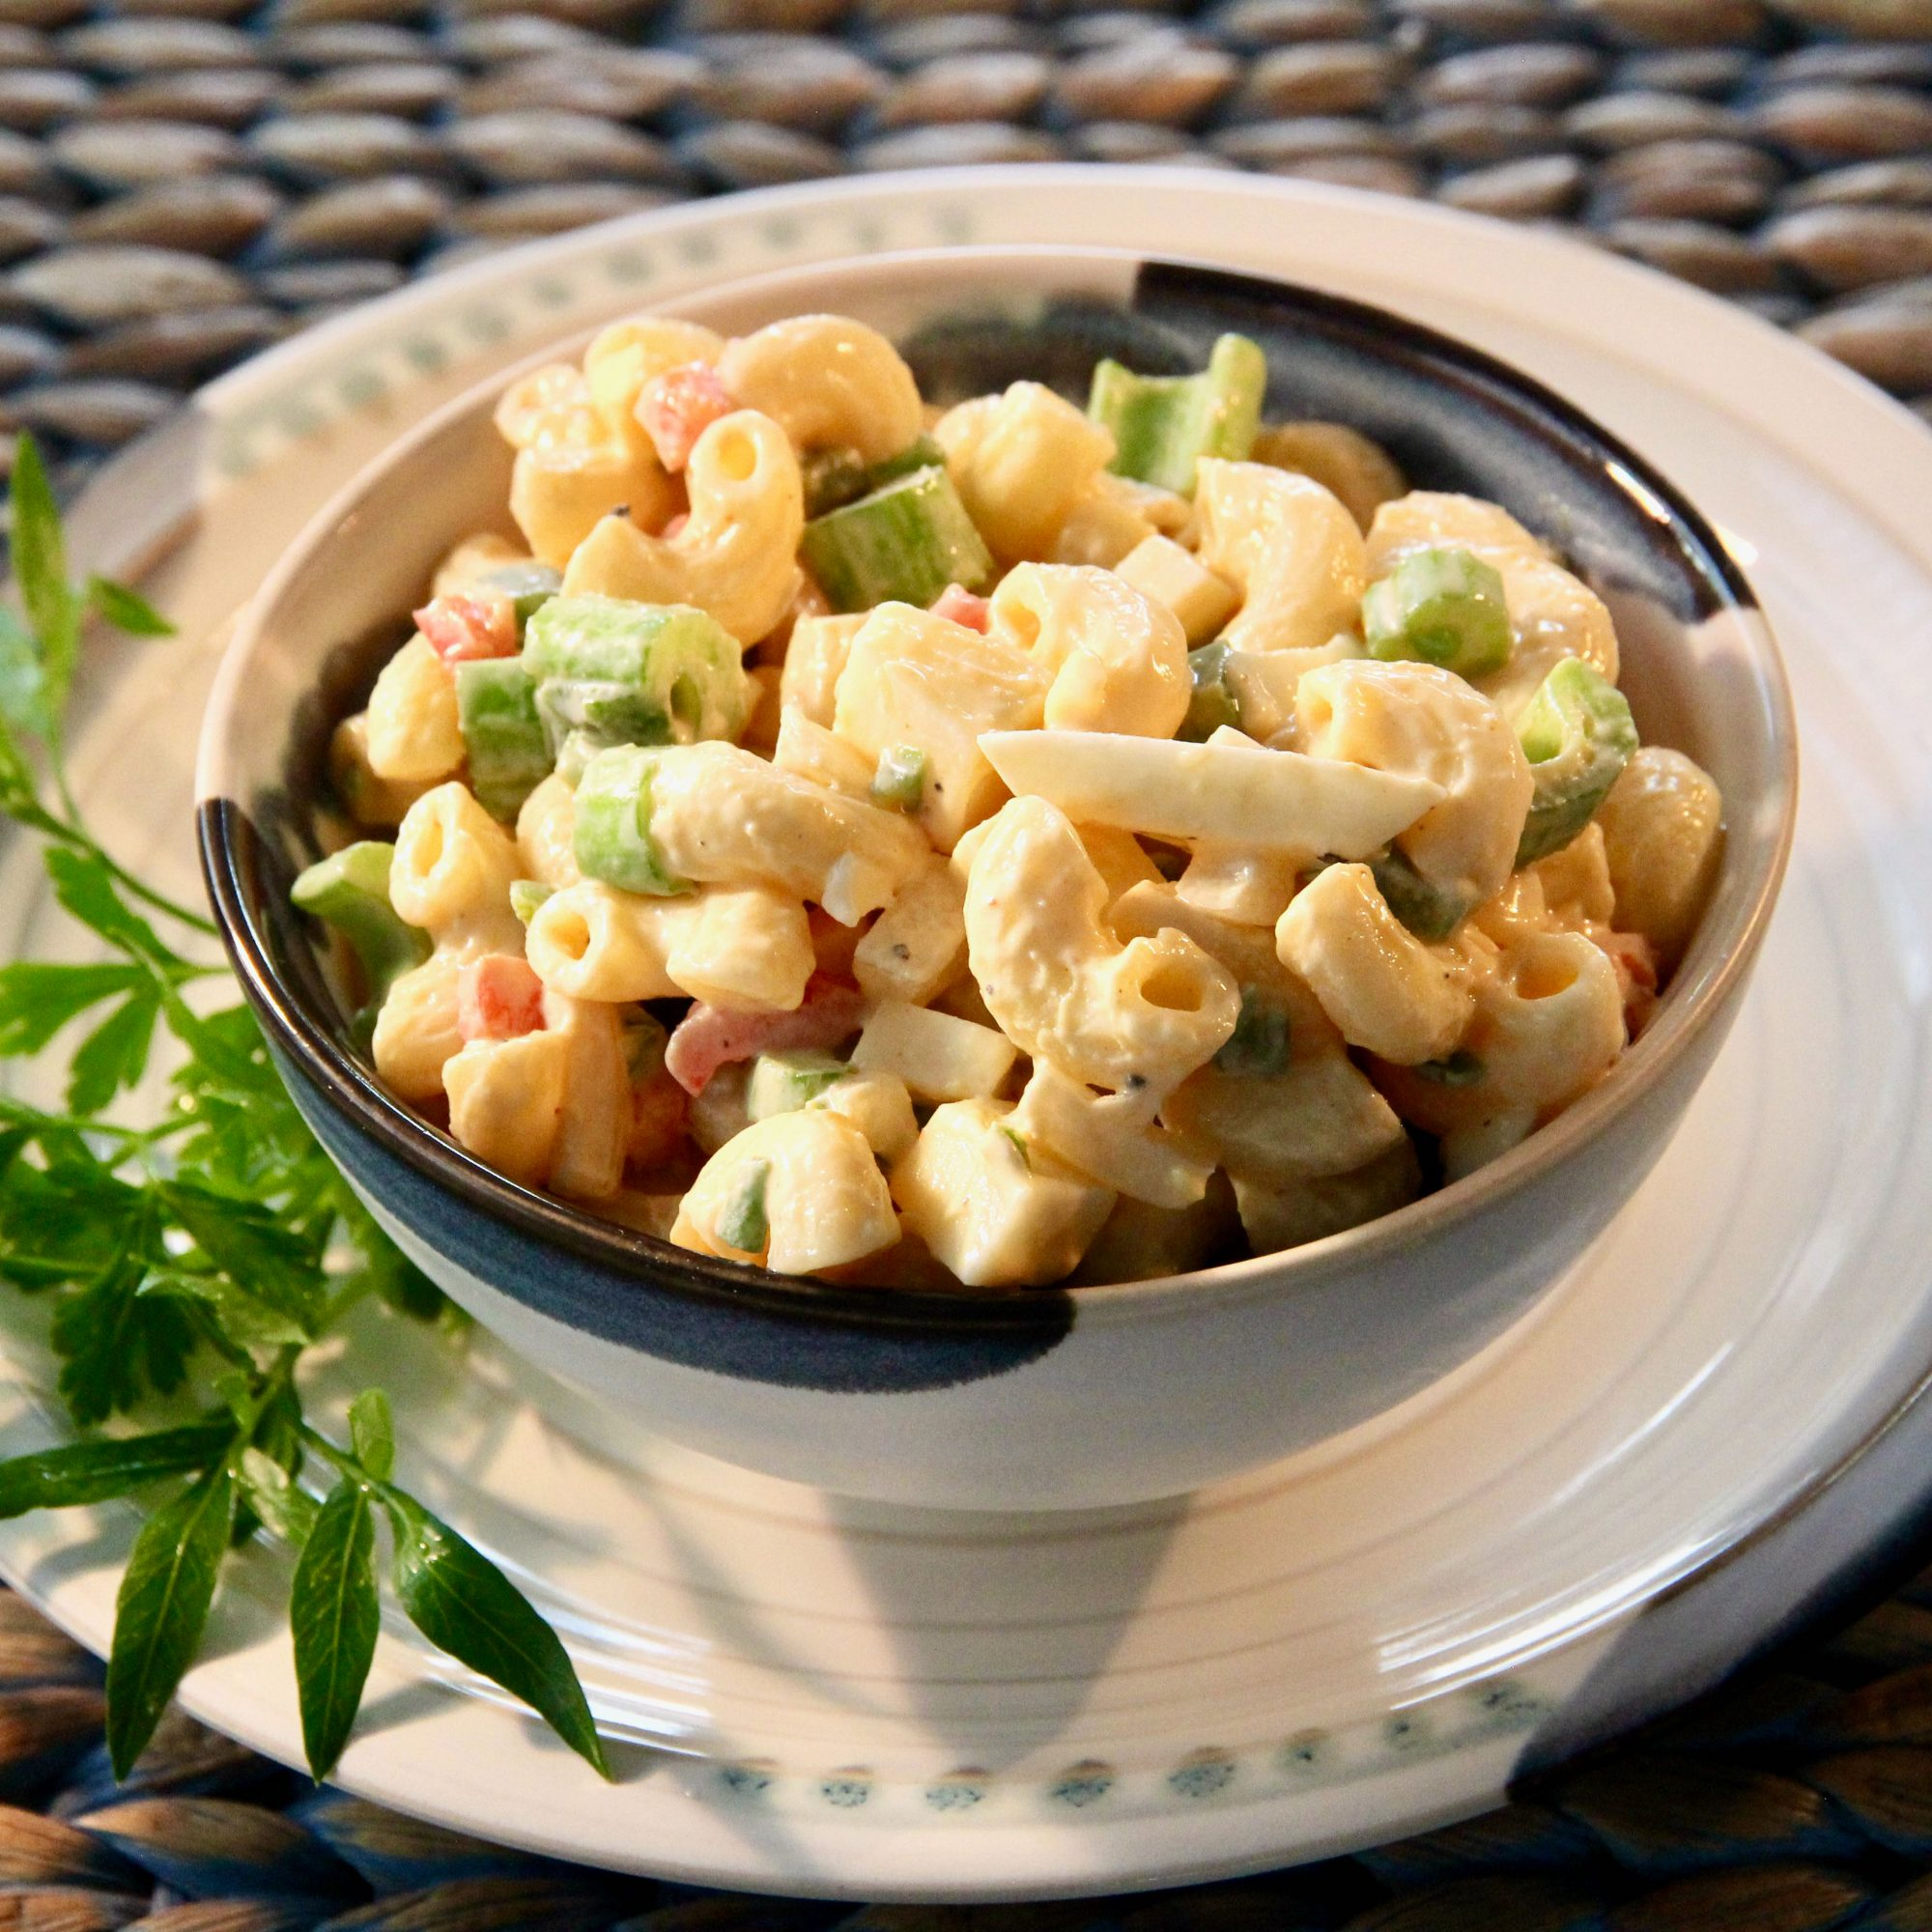 Instant Pot® Spicy Macaroni Salad in a grey bowl